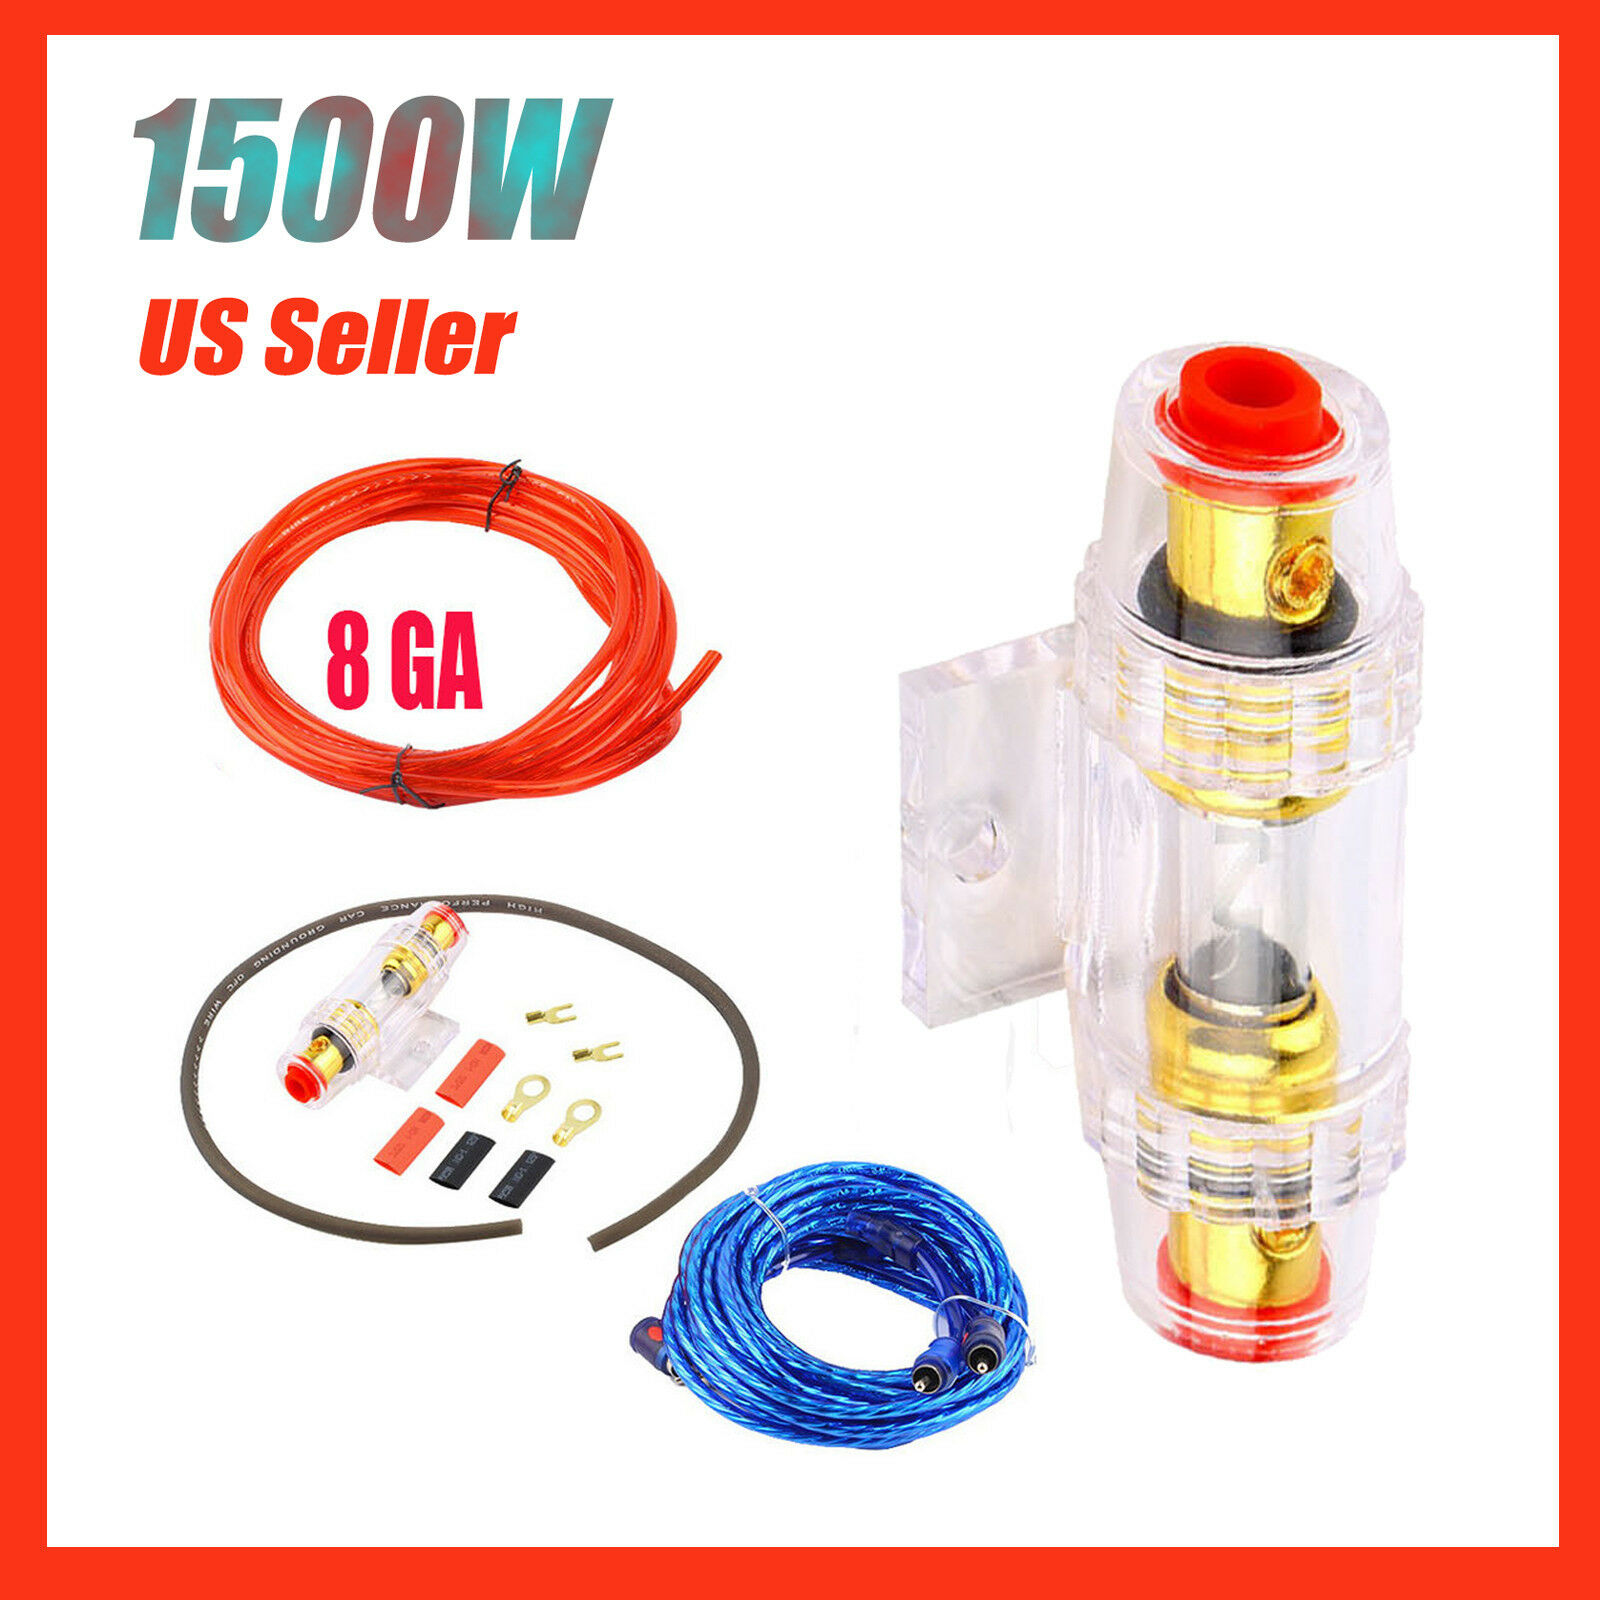 1500w 8ga Car Audio Subwoofer Amplifier Amp Wiring Fuse Holder Wire Cable Kit Qz 1 Of 7only 5 Available